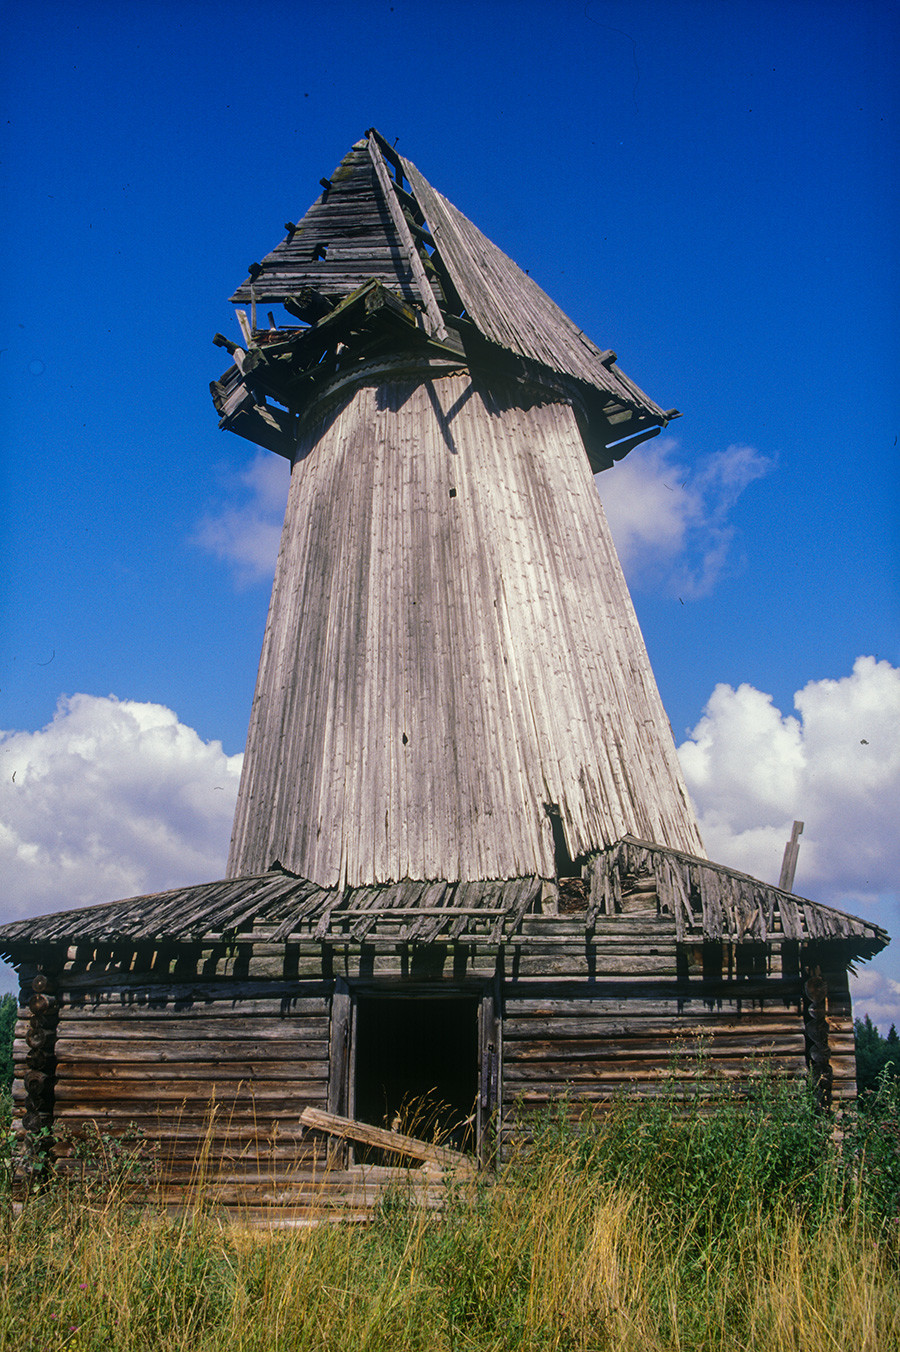 Zakharyevo. Remnants of tower windmill. August 7, 2001